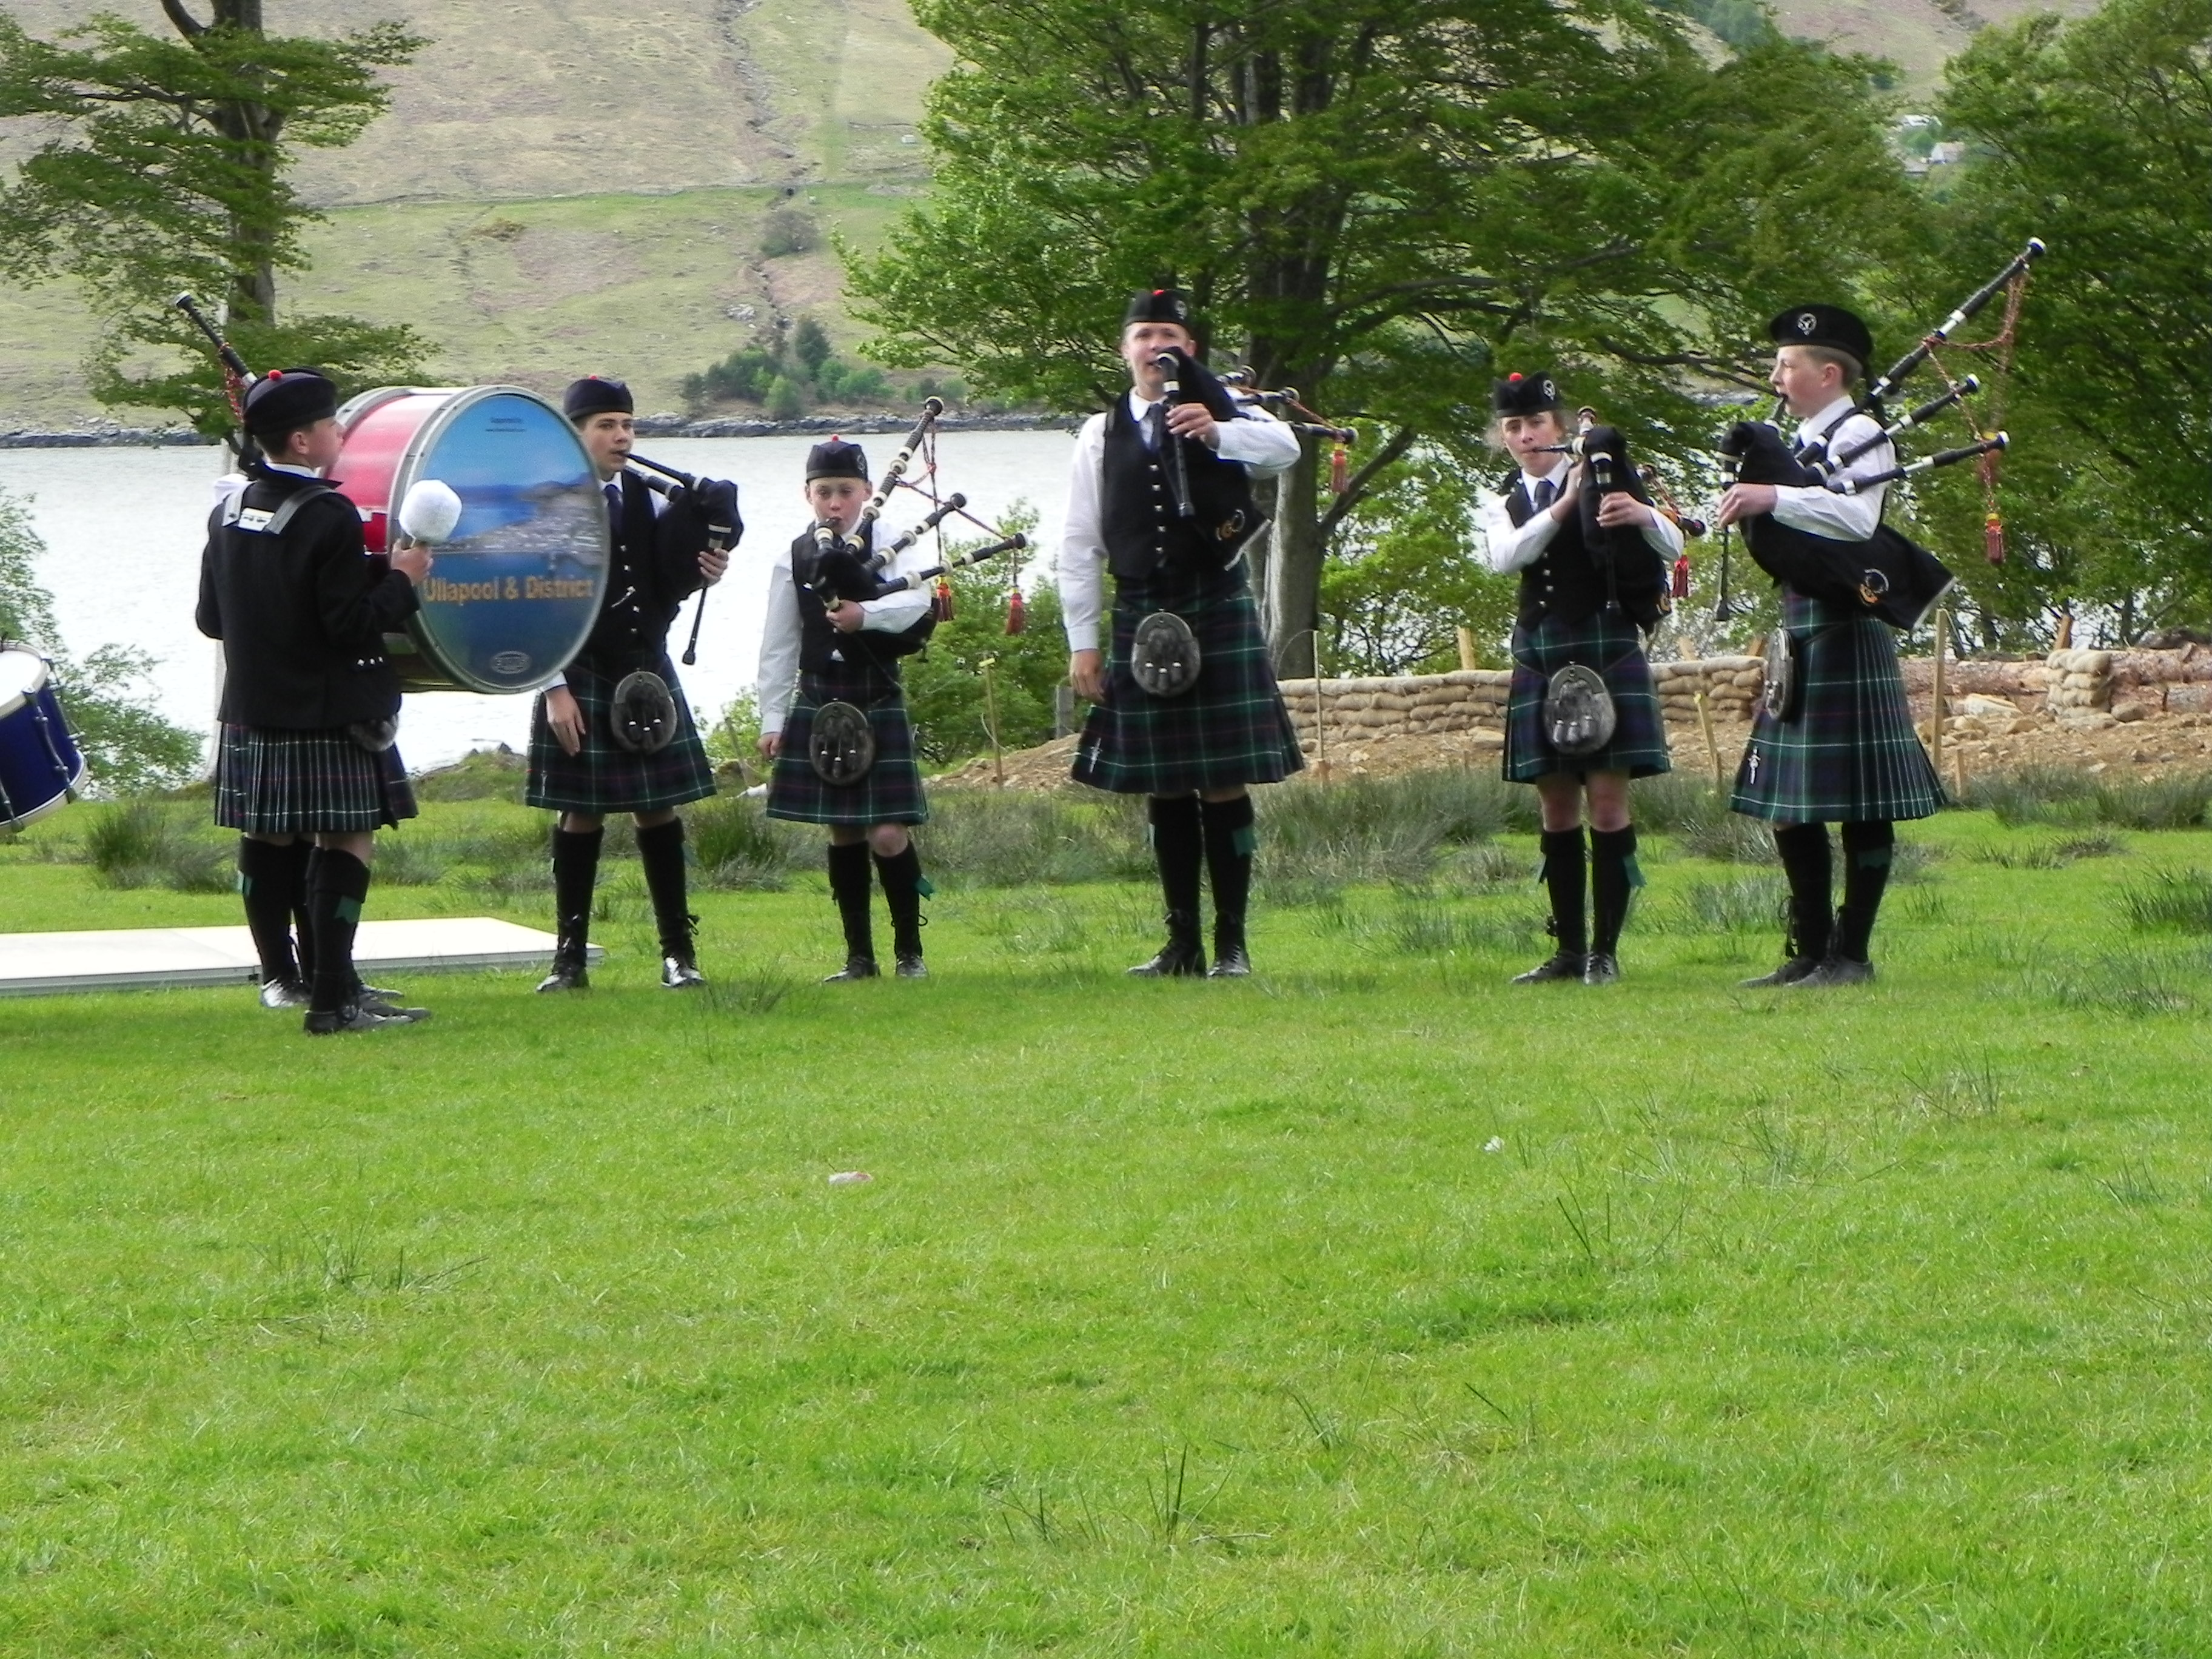 Ullapool Pipe Band